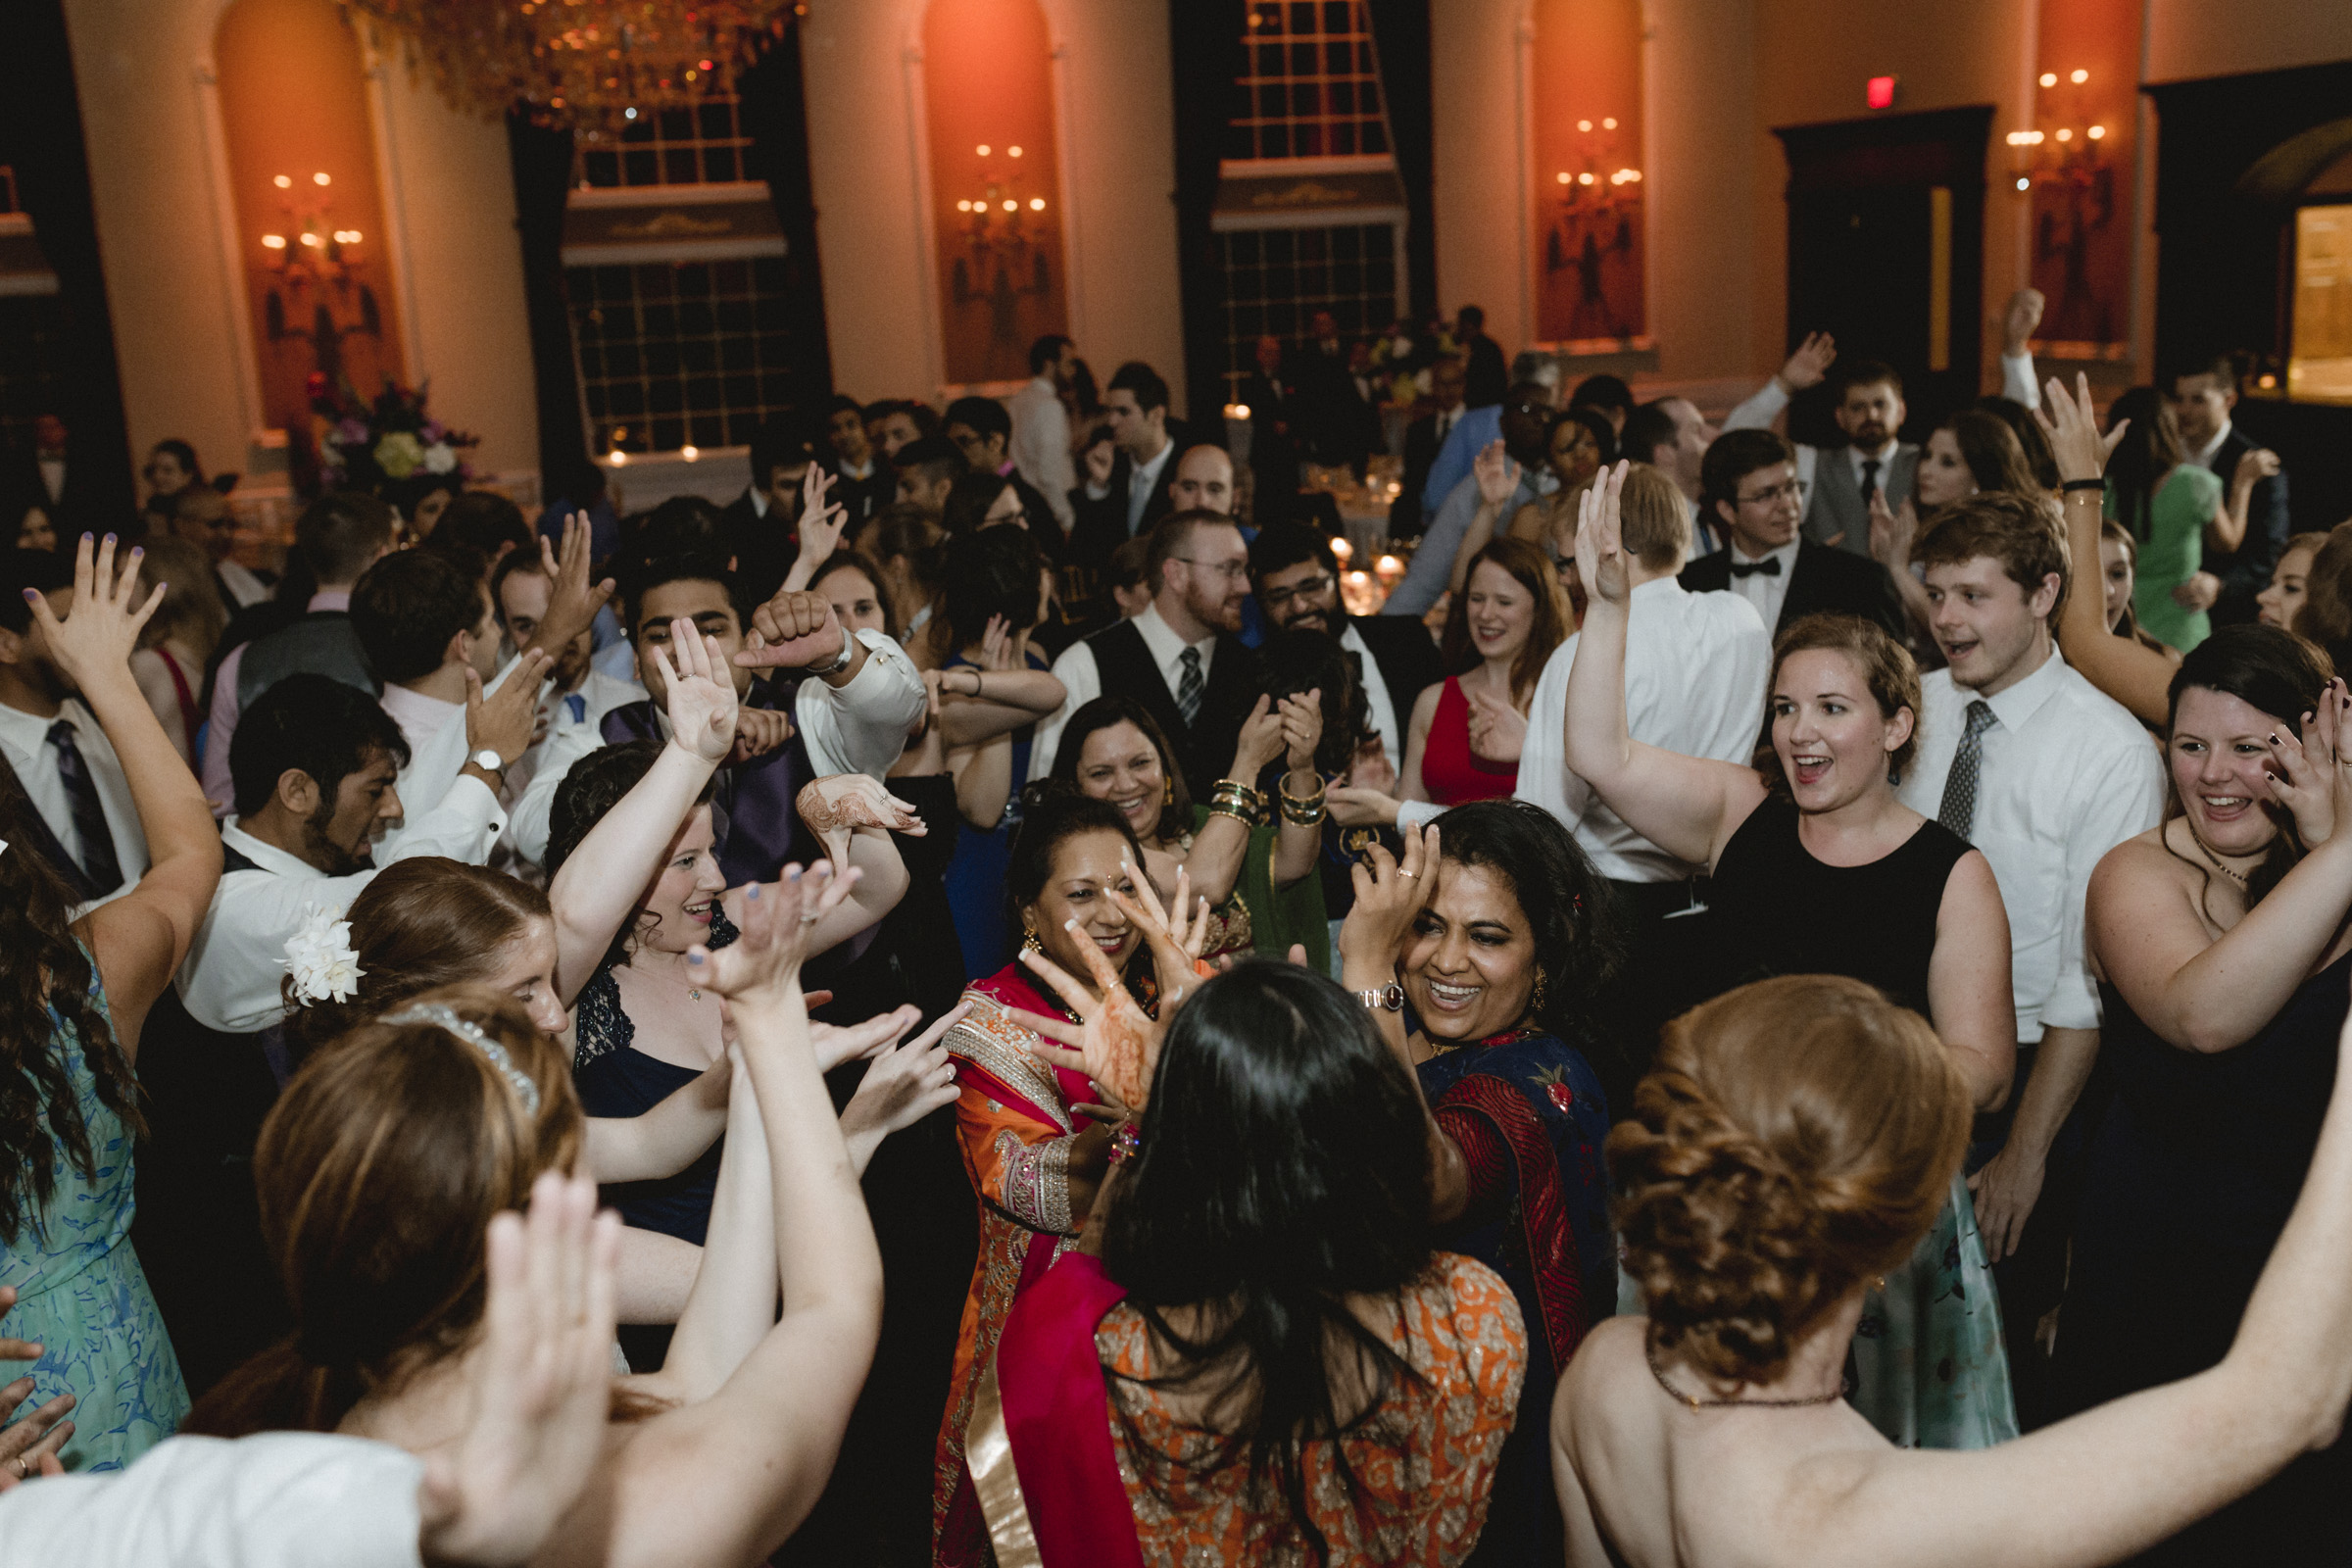 Guests perform indian dance - Estate at Florentine Gardens wedding - Hudson Valley Wedding - Kelsey & Anish's wedding - Amy Sims Photography